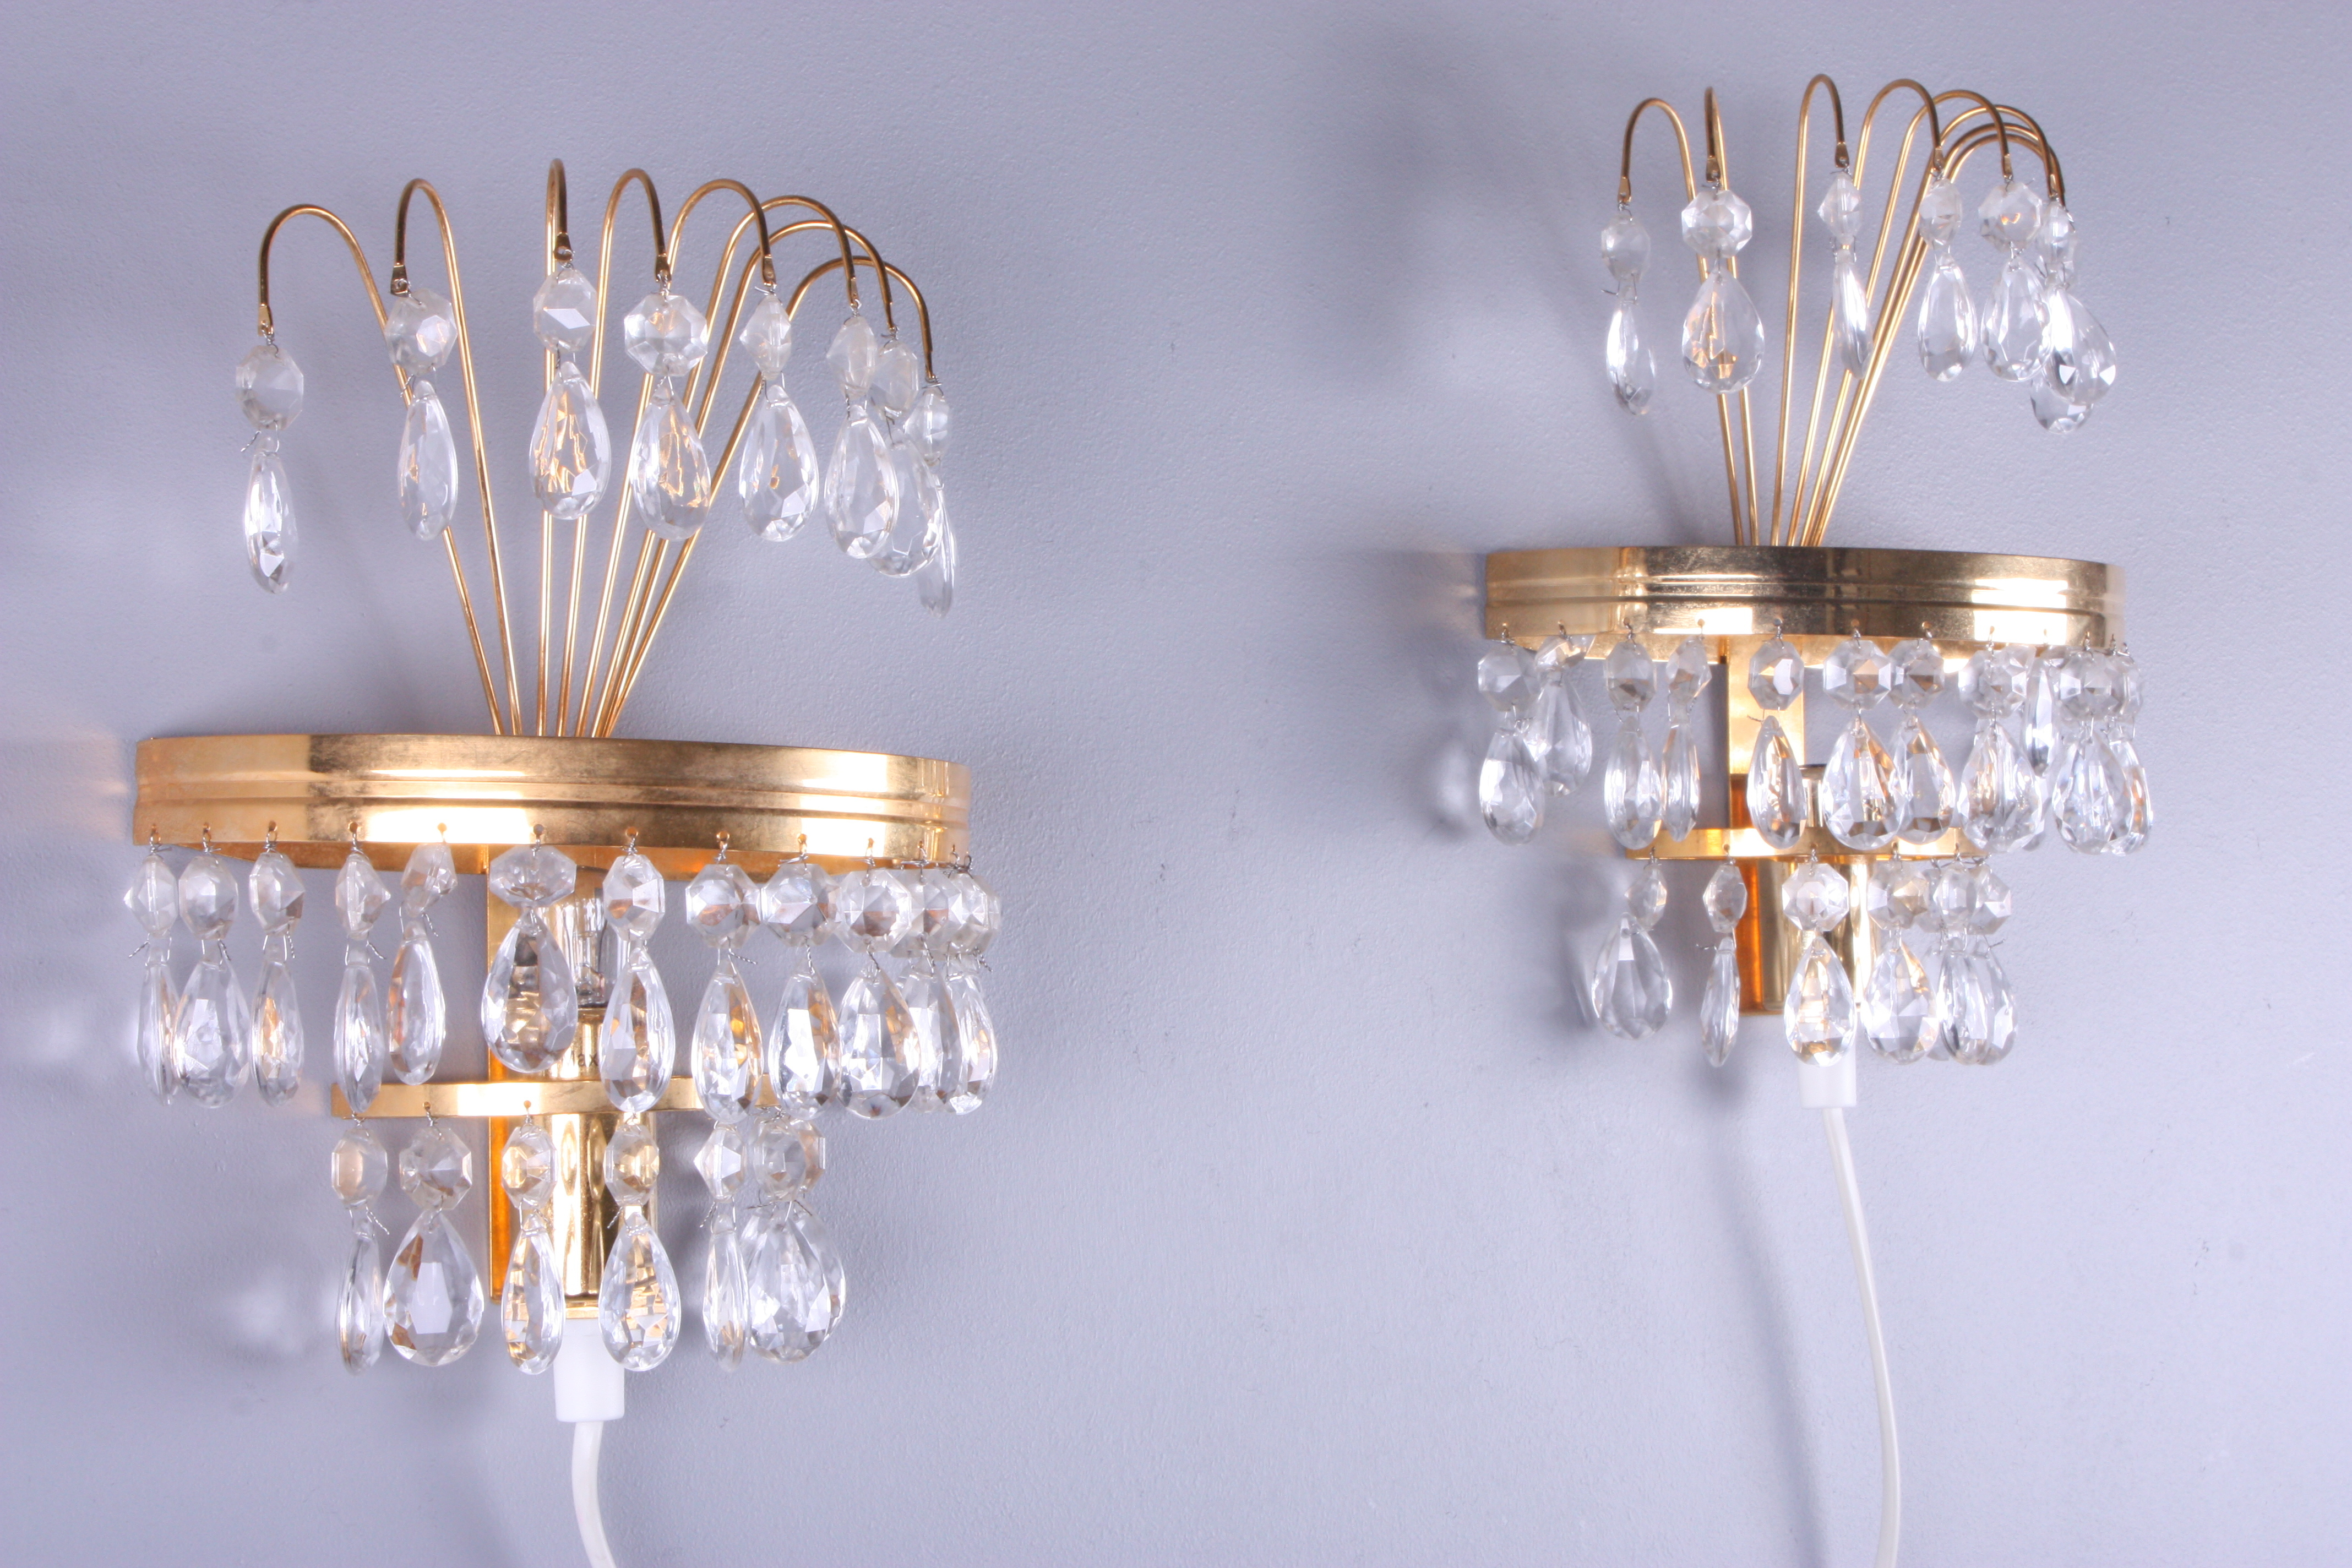 Lamps, IKEA, type V 307, one pair. Lighting & Lamps Wall